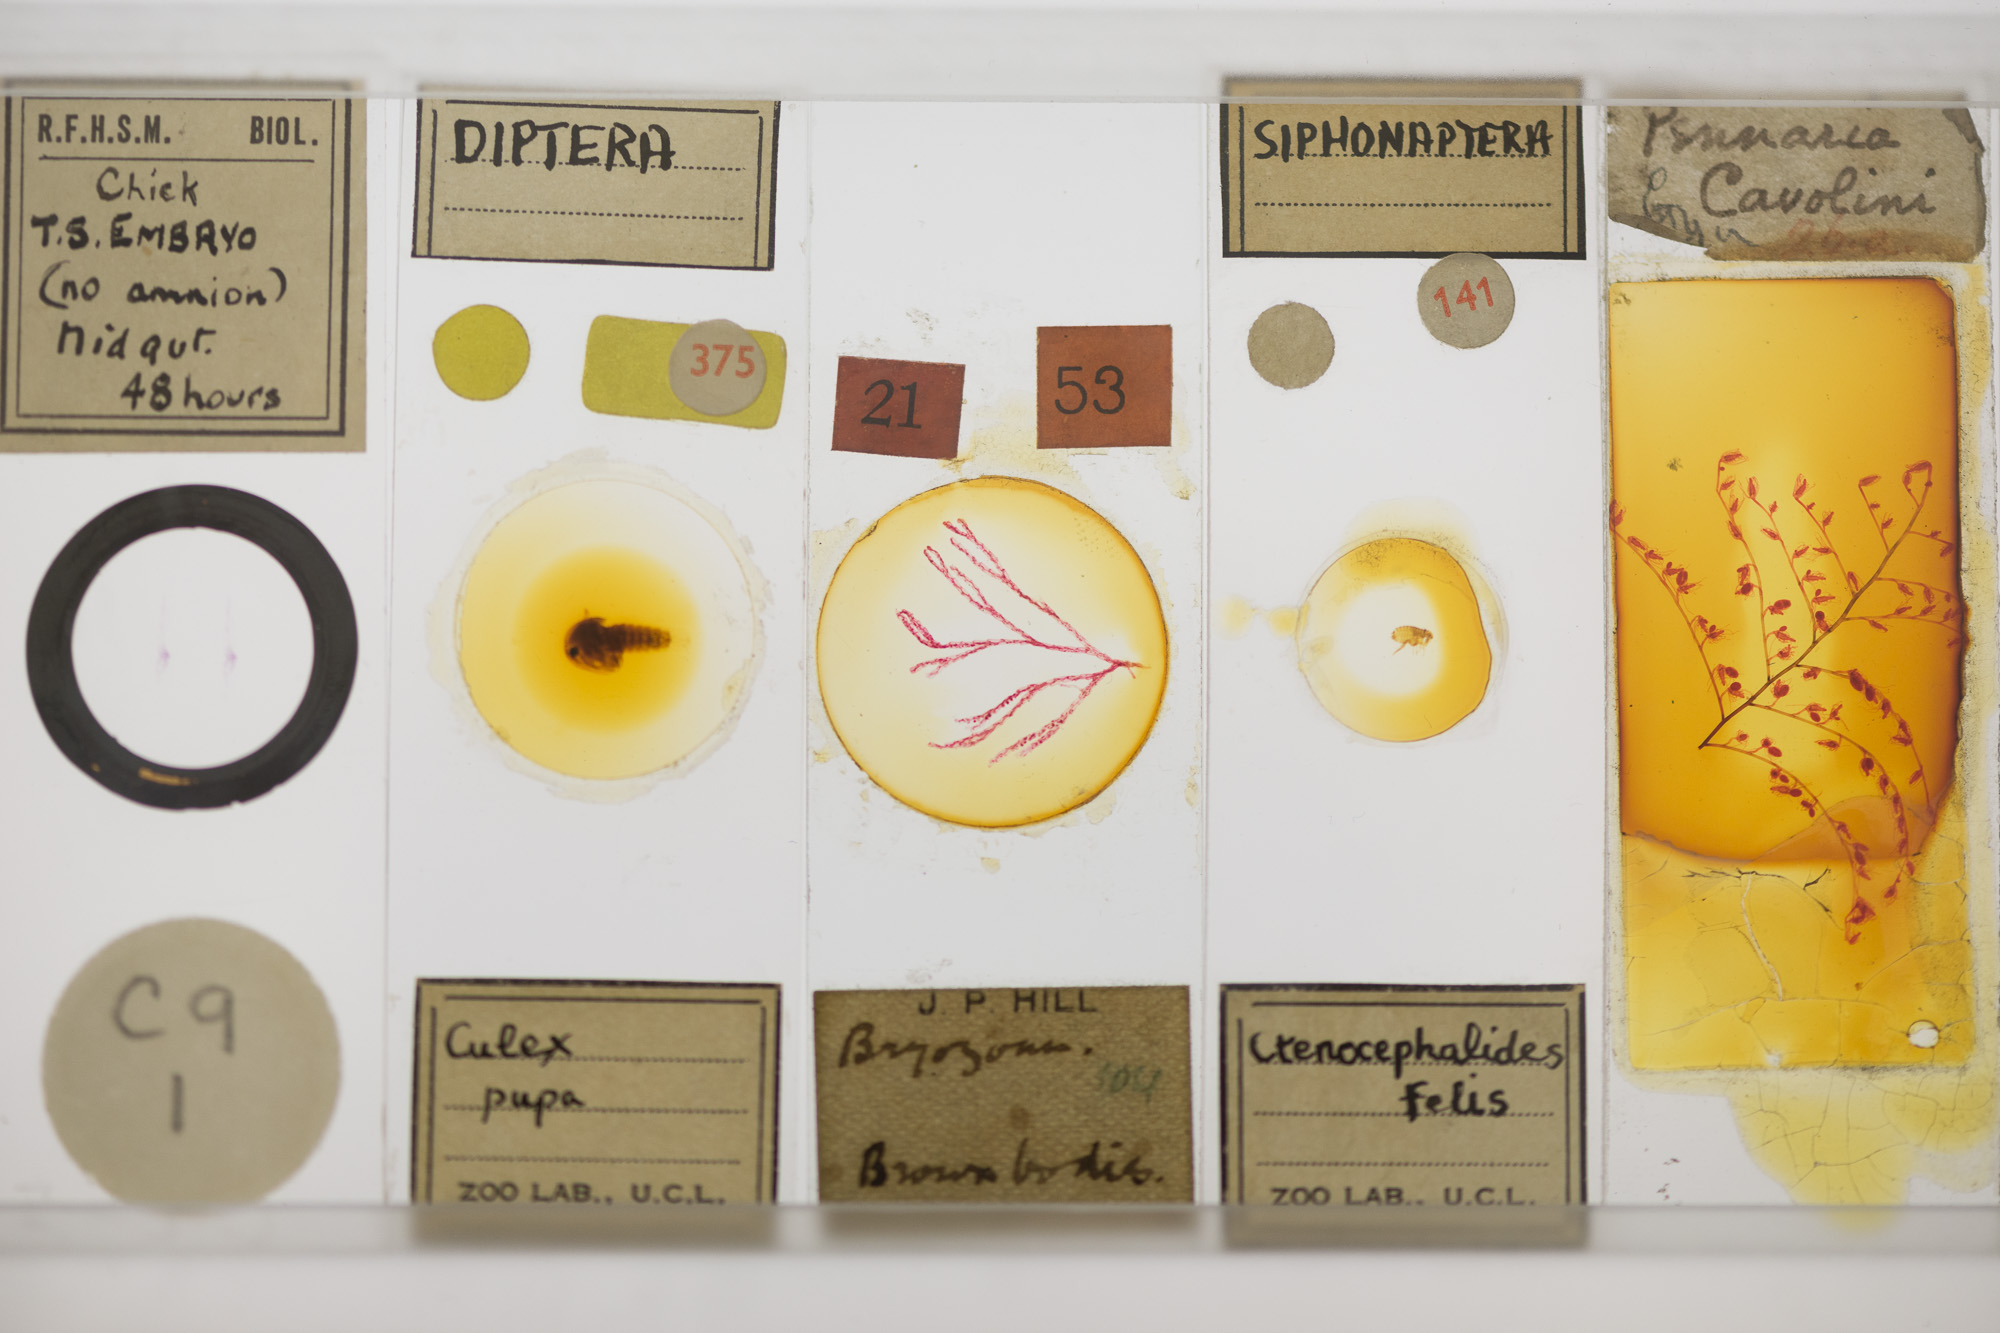 Five glass microscope slides filled with various specimens. They each have cream labels and handwritten notes.